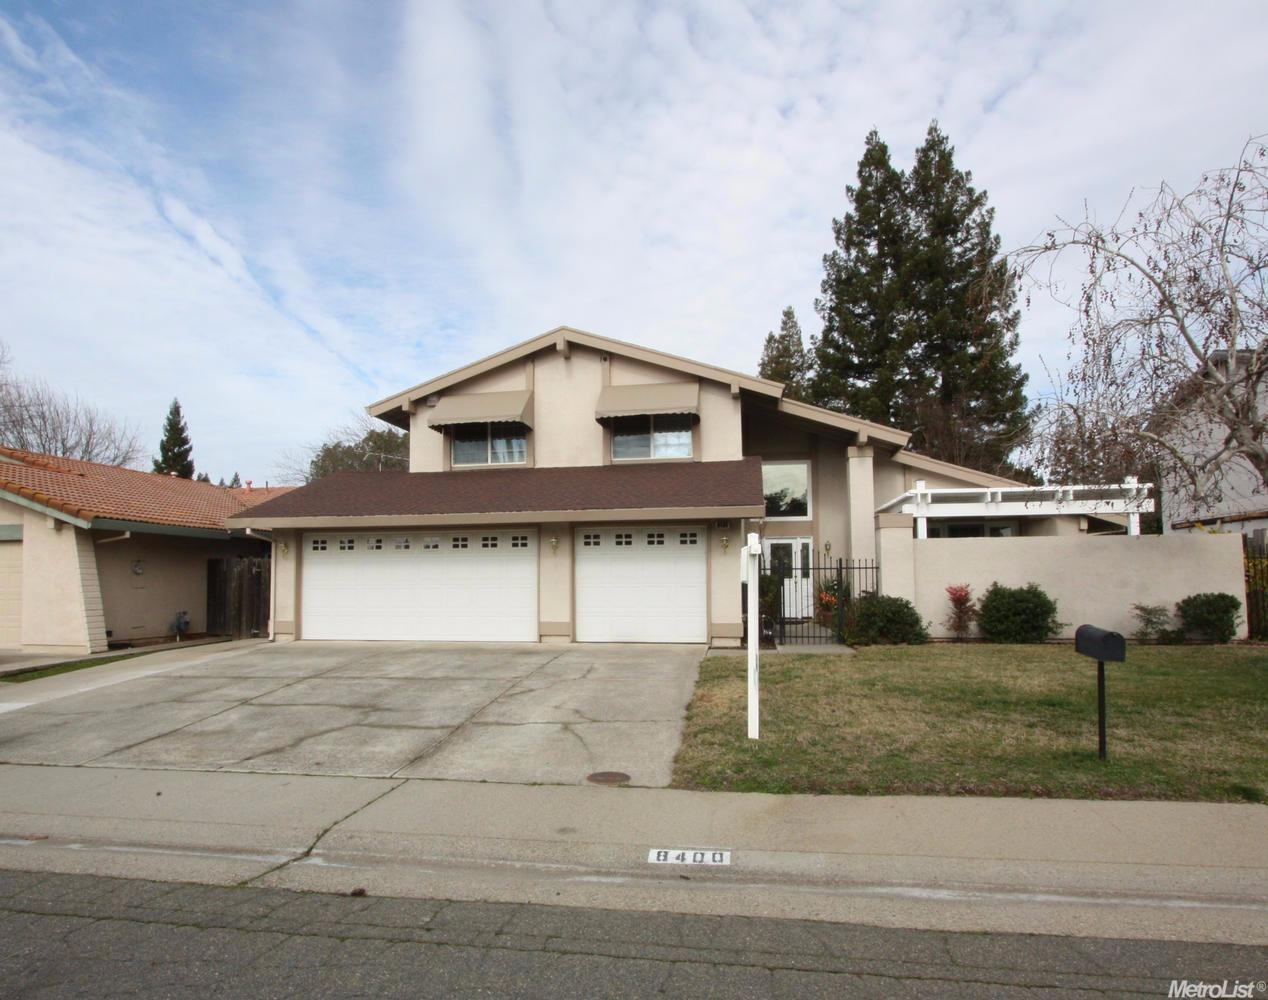 8400 Conover Drive, Citrus Heights, CA 95610